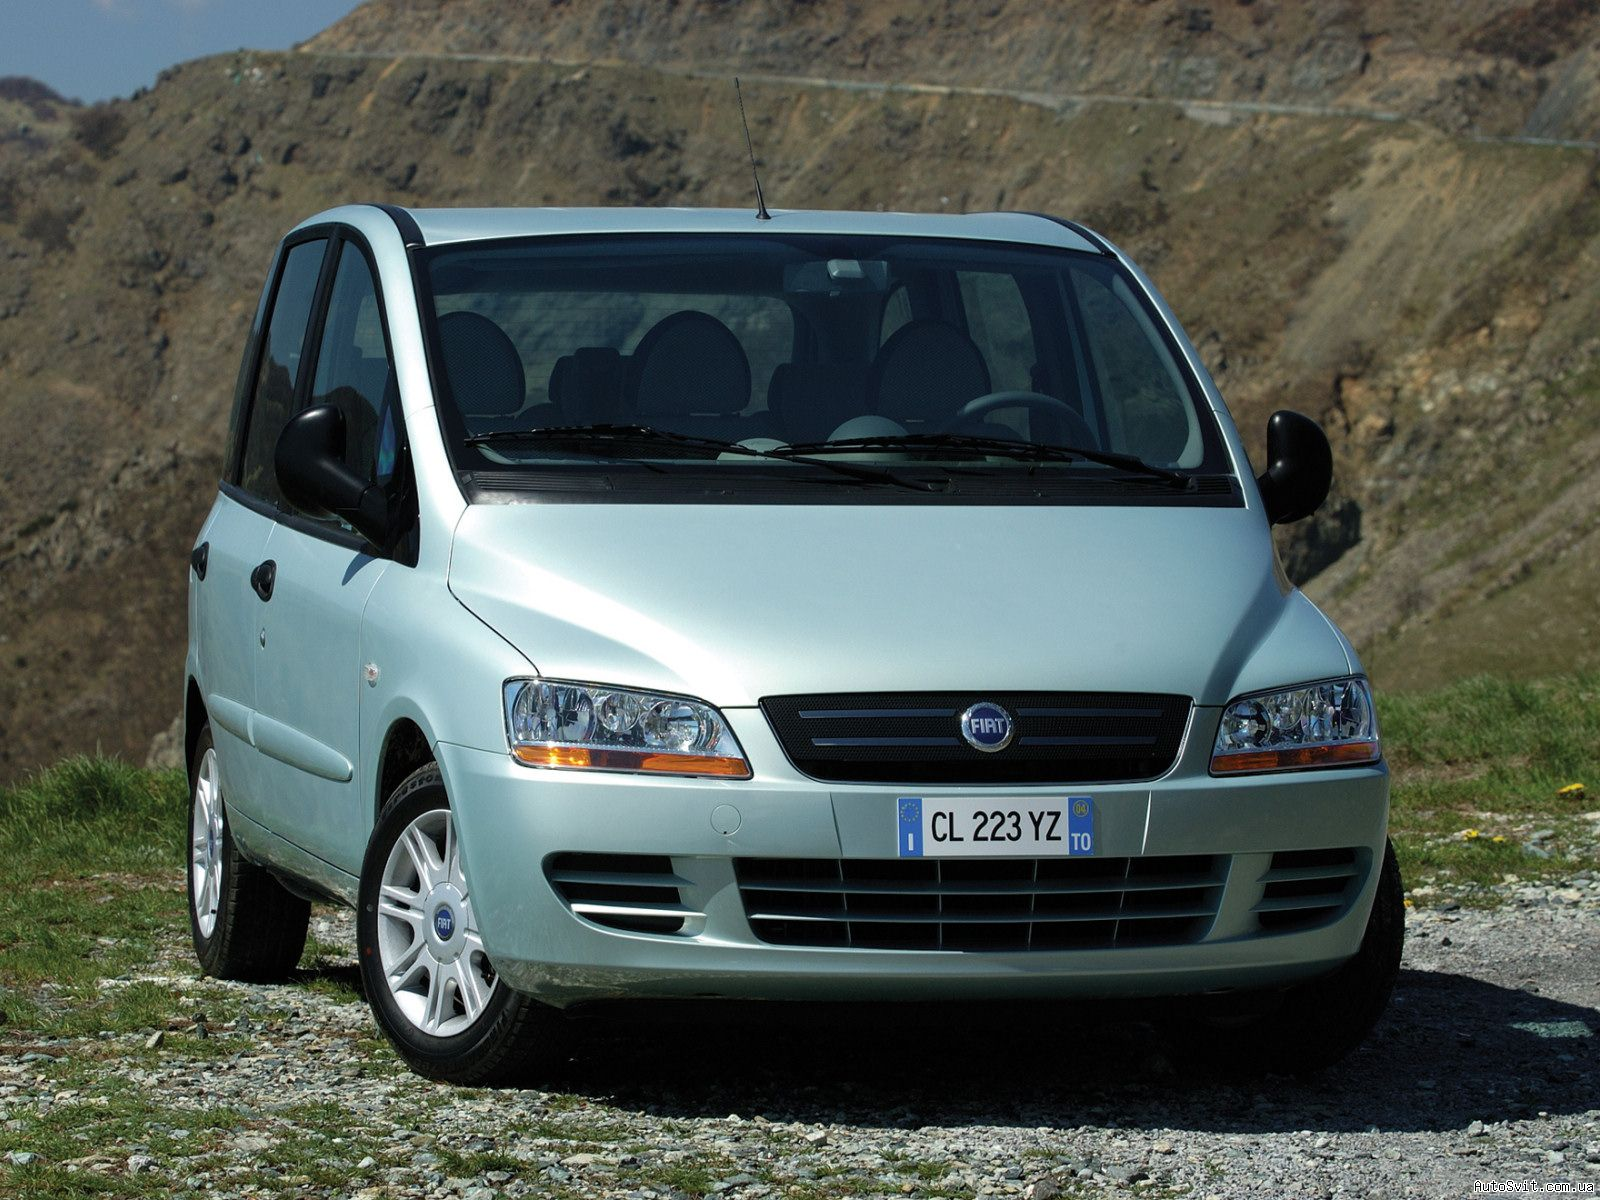 2004 Fiat Multipla Mpv 5-door